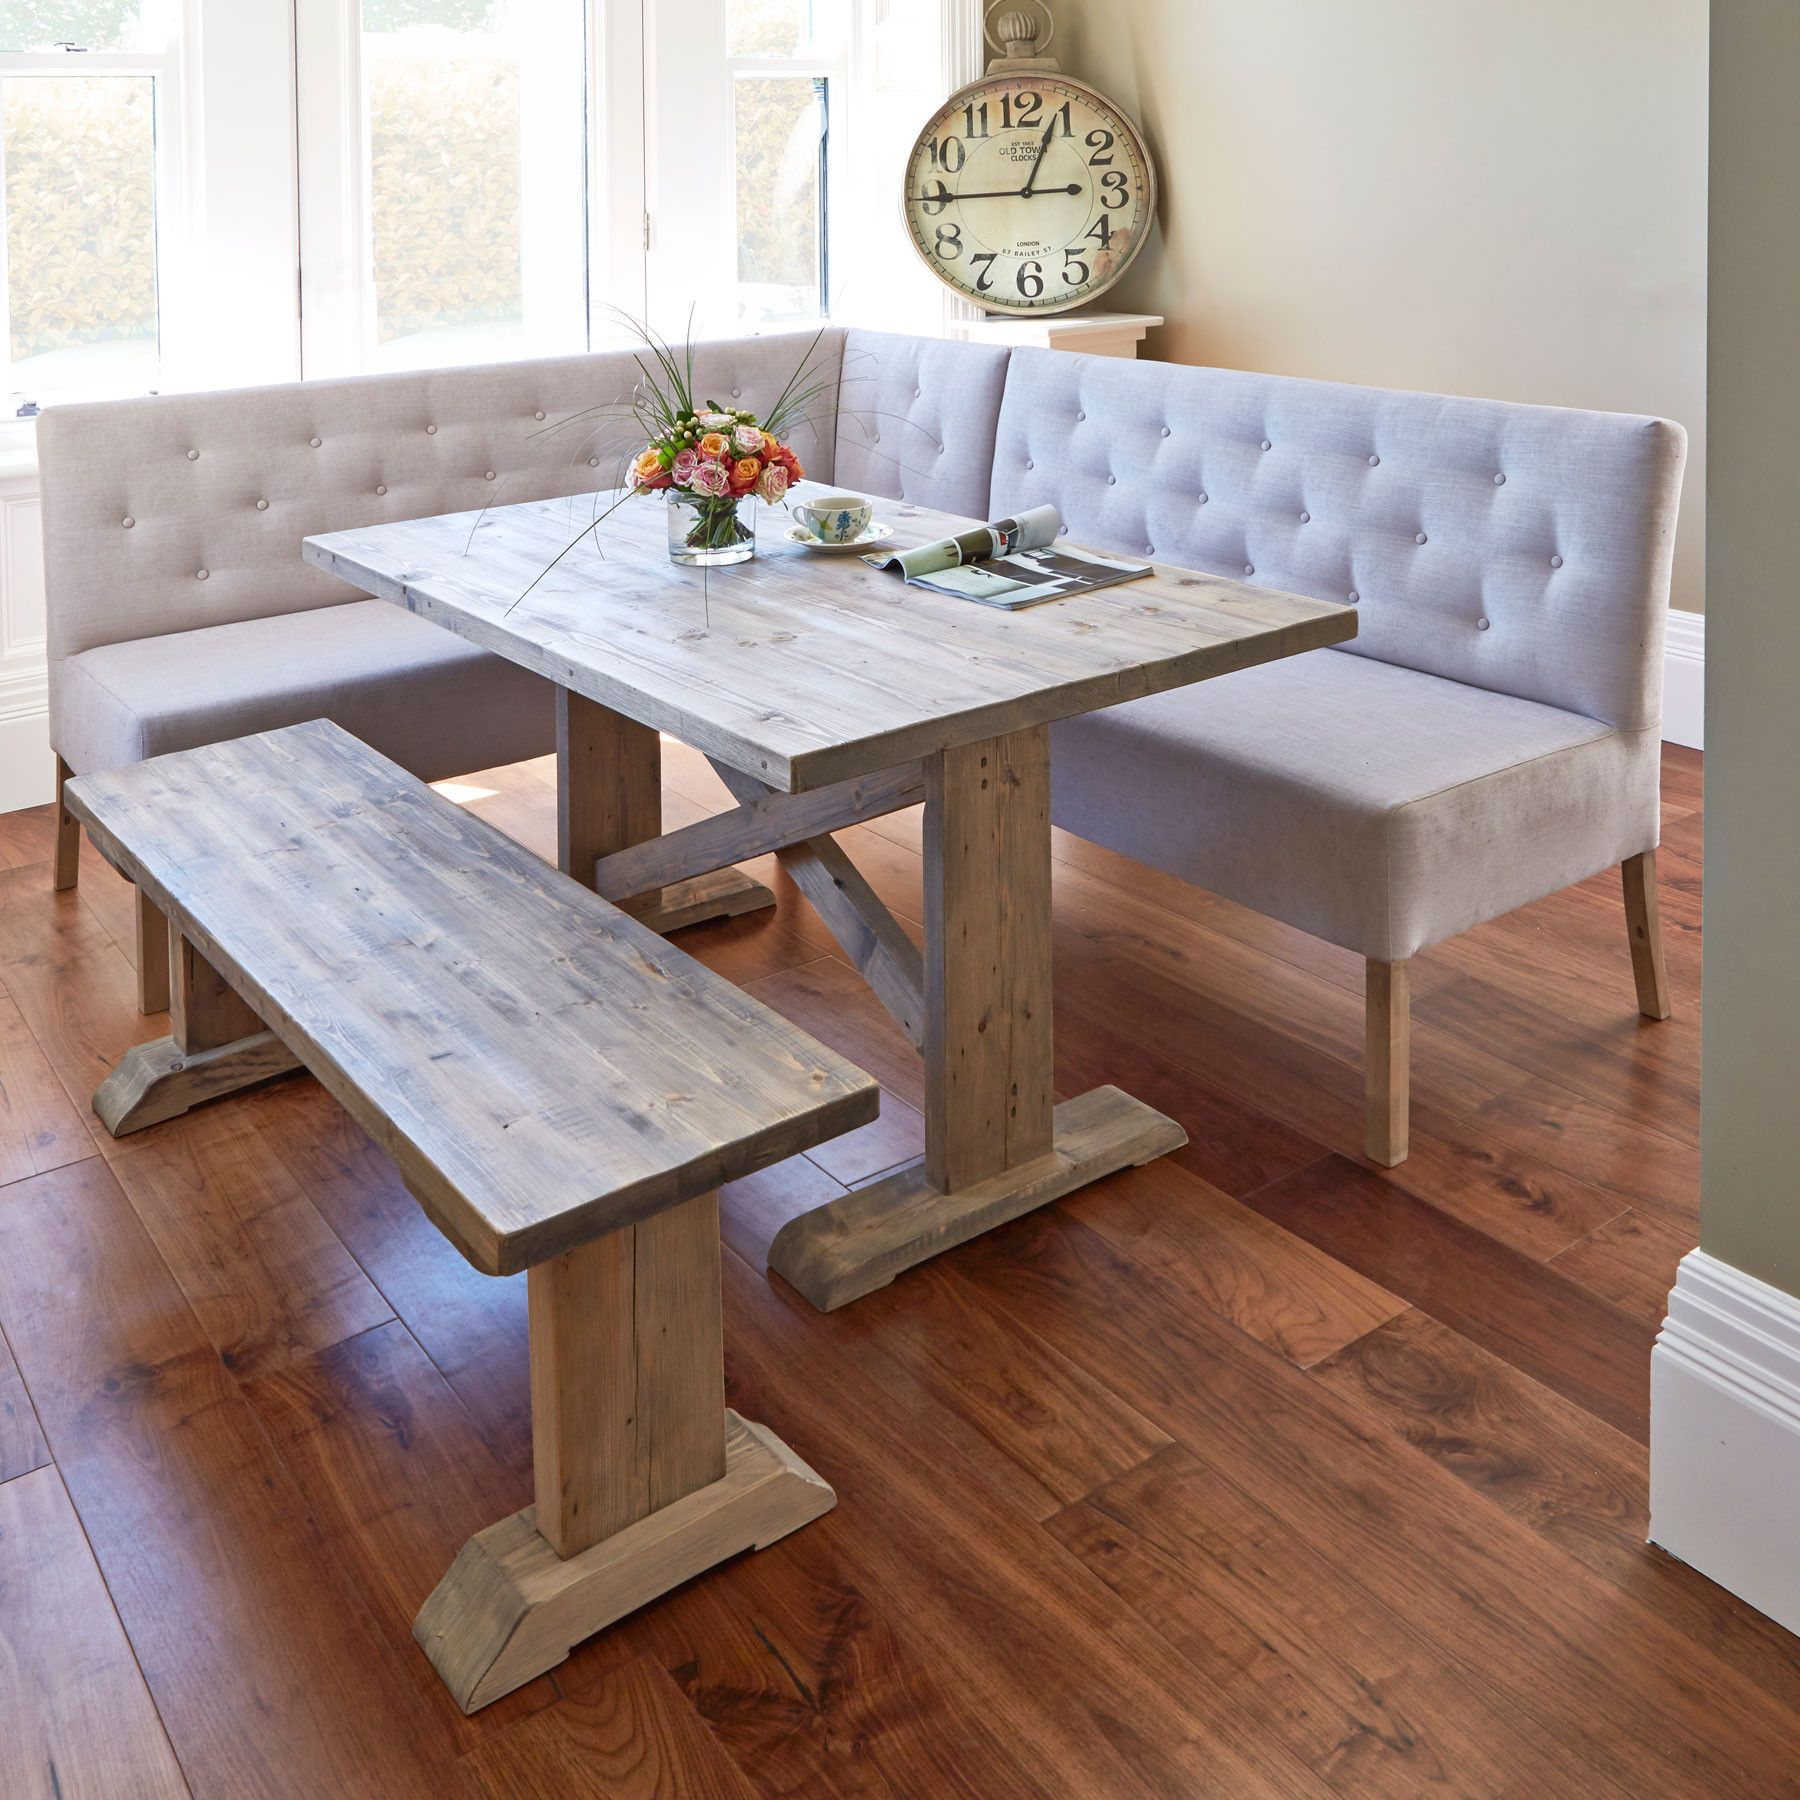 Dinner Table Bench: Alina Dining Table With Corner And Small Bench